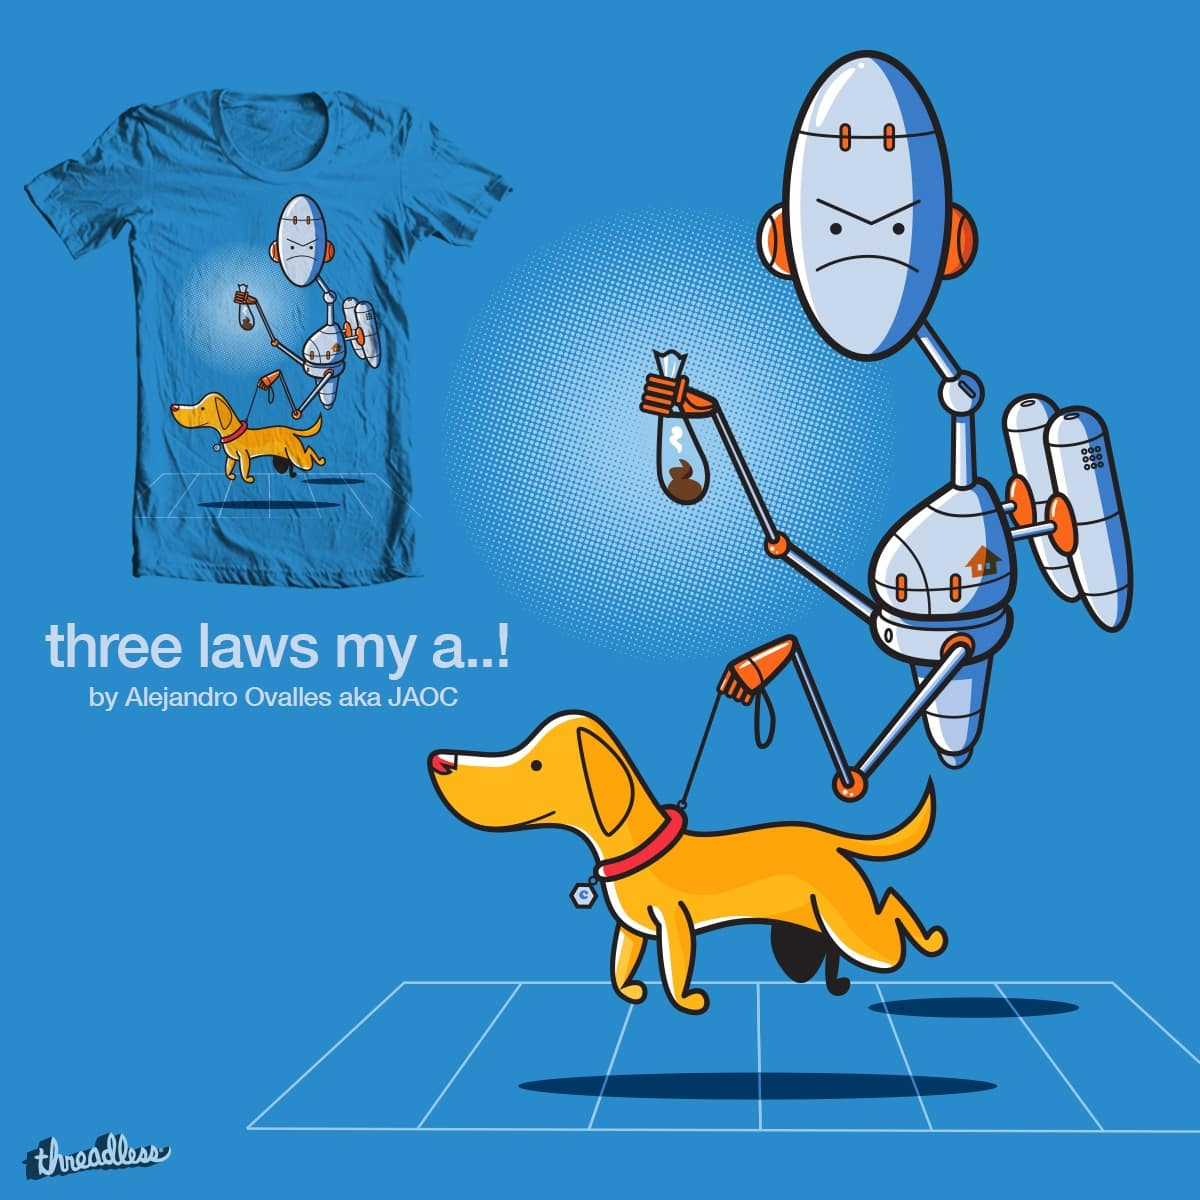 three laws my a..! by jaoc28 on Threadless